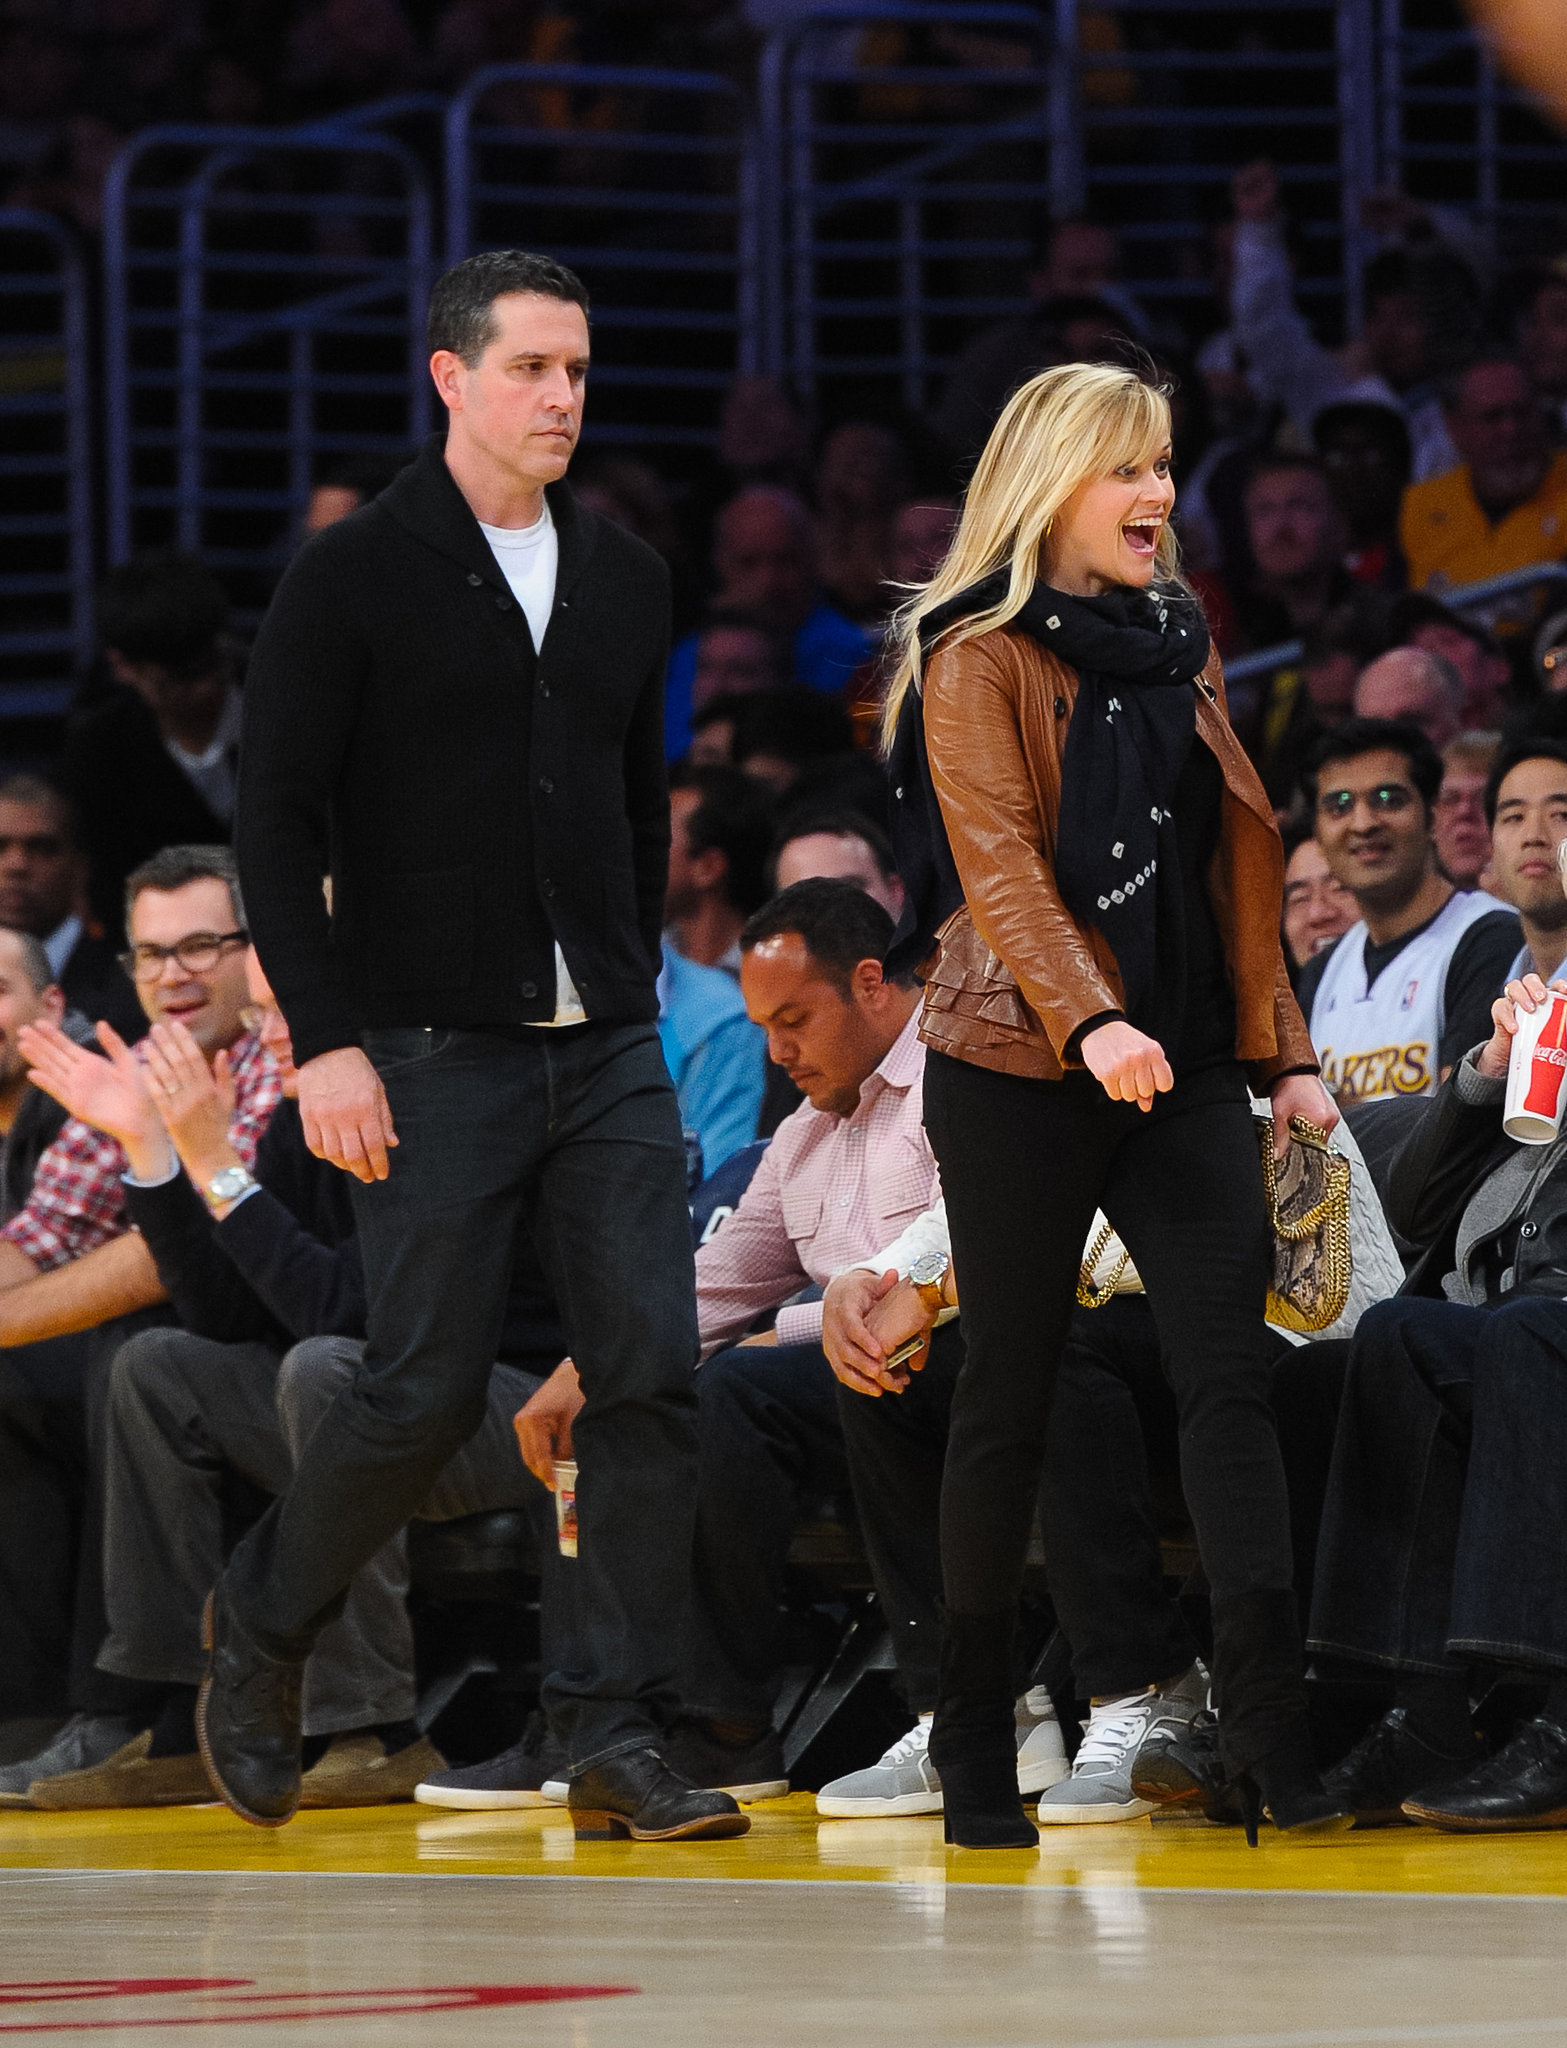 Reese Witherspoon wore a buttery leather jacket with black pants and high-heeled boots for a March 2013 Lakers g